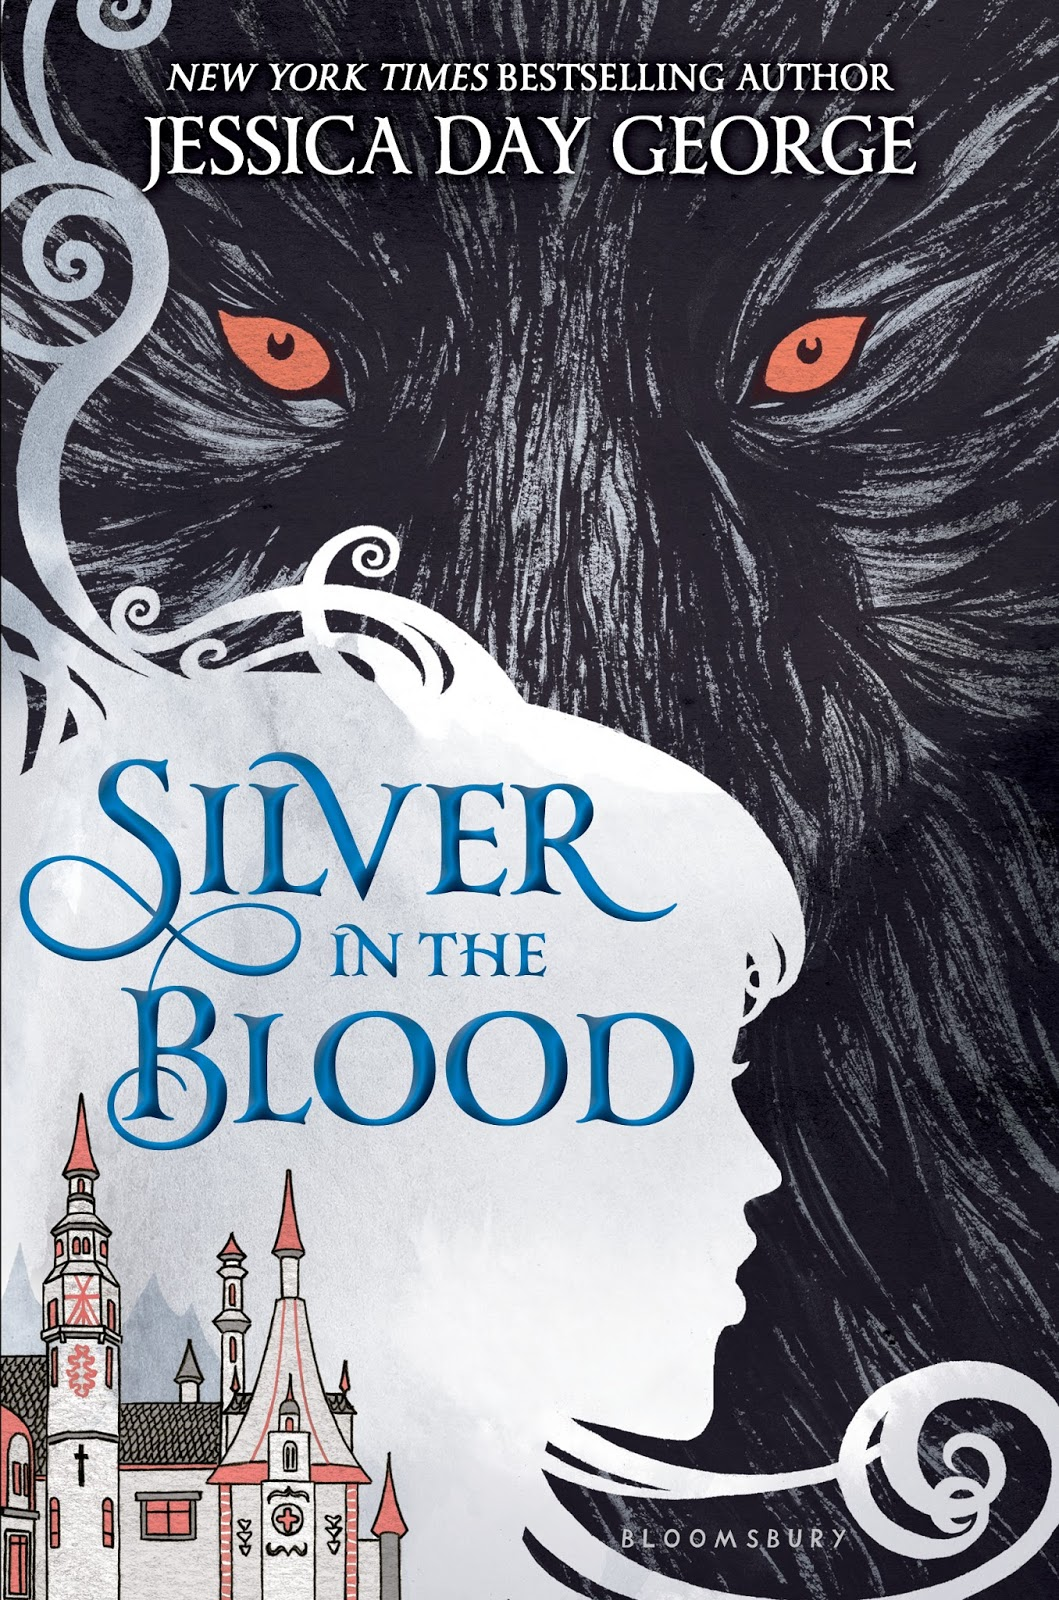 Silver in the blood - bibliophile review